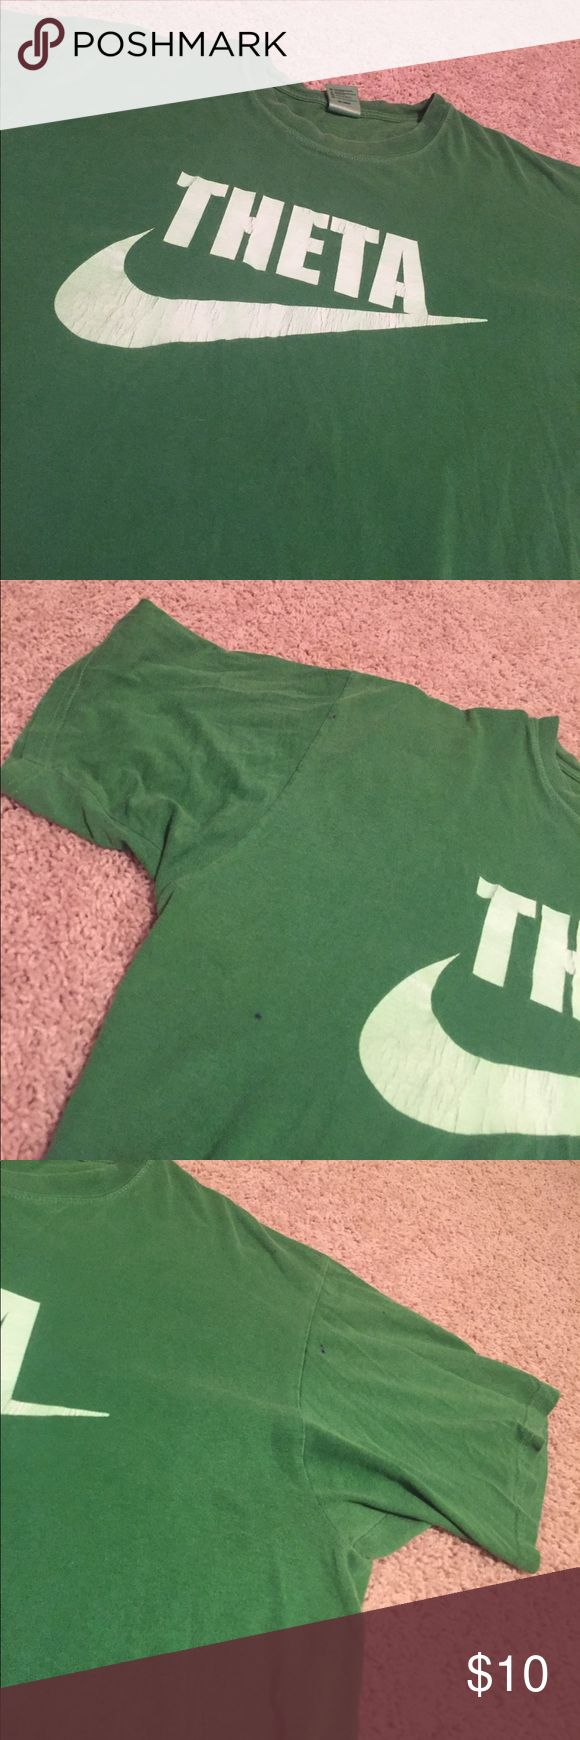 Theta 'Just Do It' Green Short Sleeve Tshirt! Theta 'Just Do It' Green Short Sleeve Tshirt! Size: Large!! Worn several times and visible signs of wear! There are a couple small ink pen stains on it, these are shown in pictures! It is very comfortable and super soft! authentic pigment Tops Tees - Short Sleeve